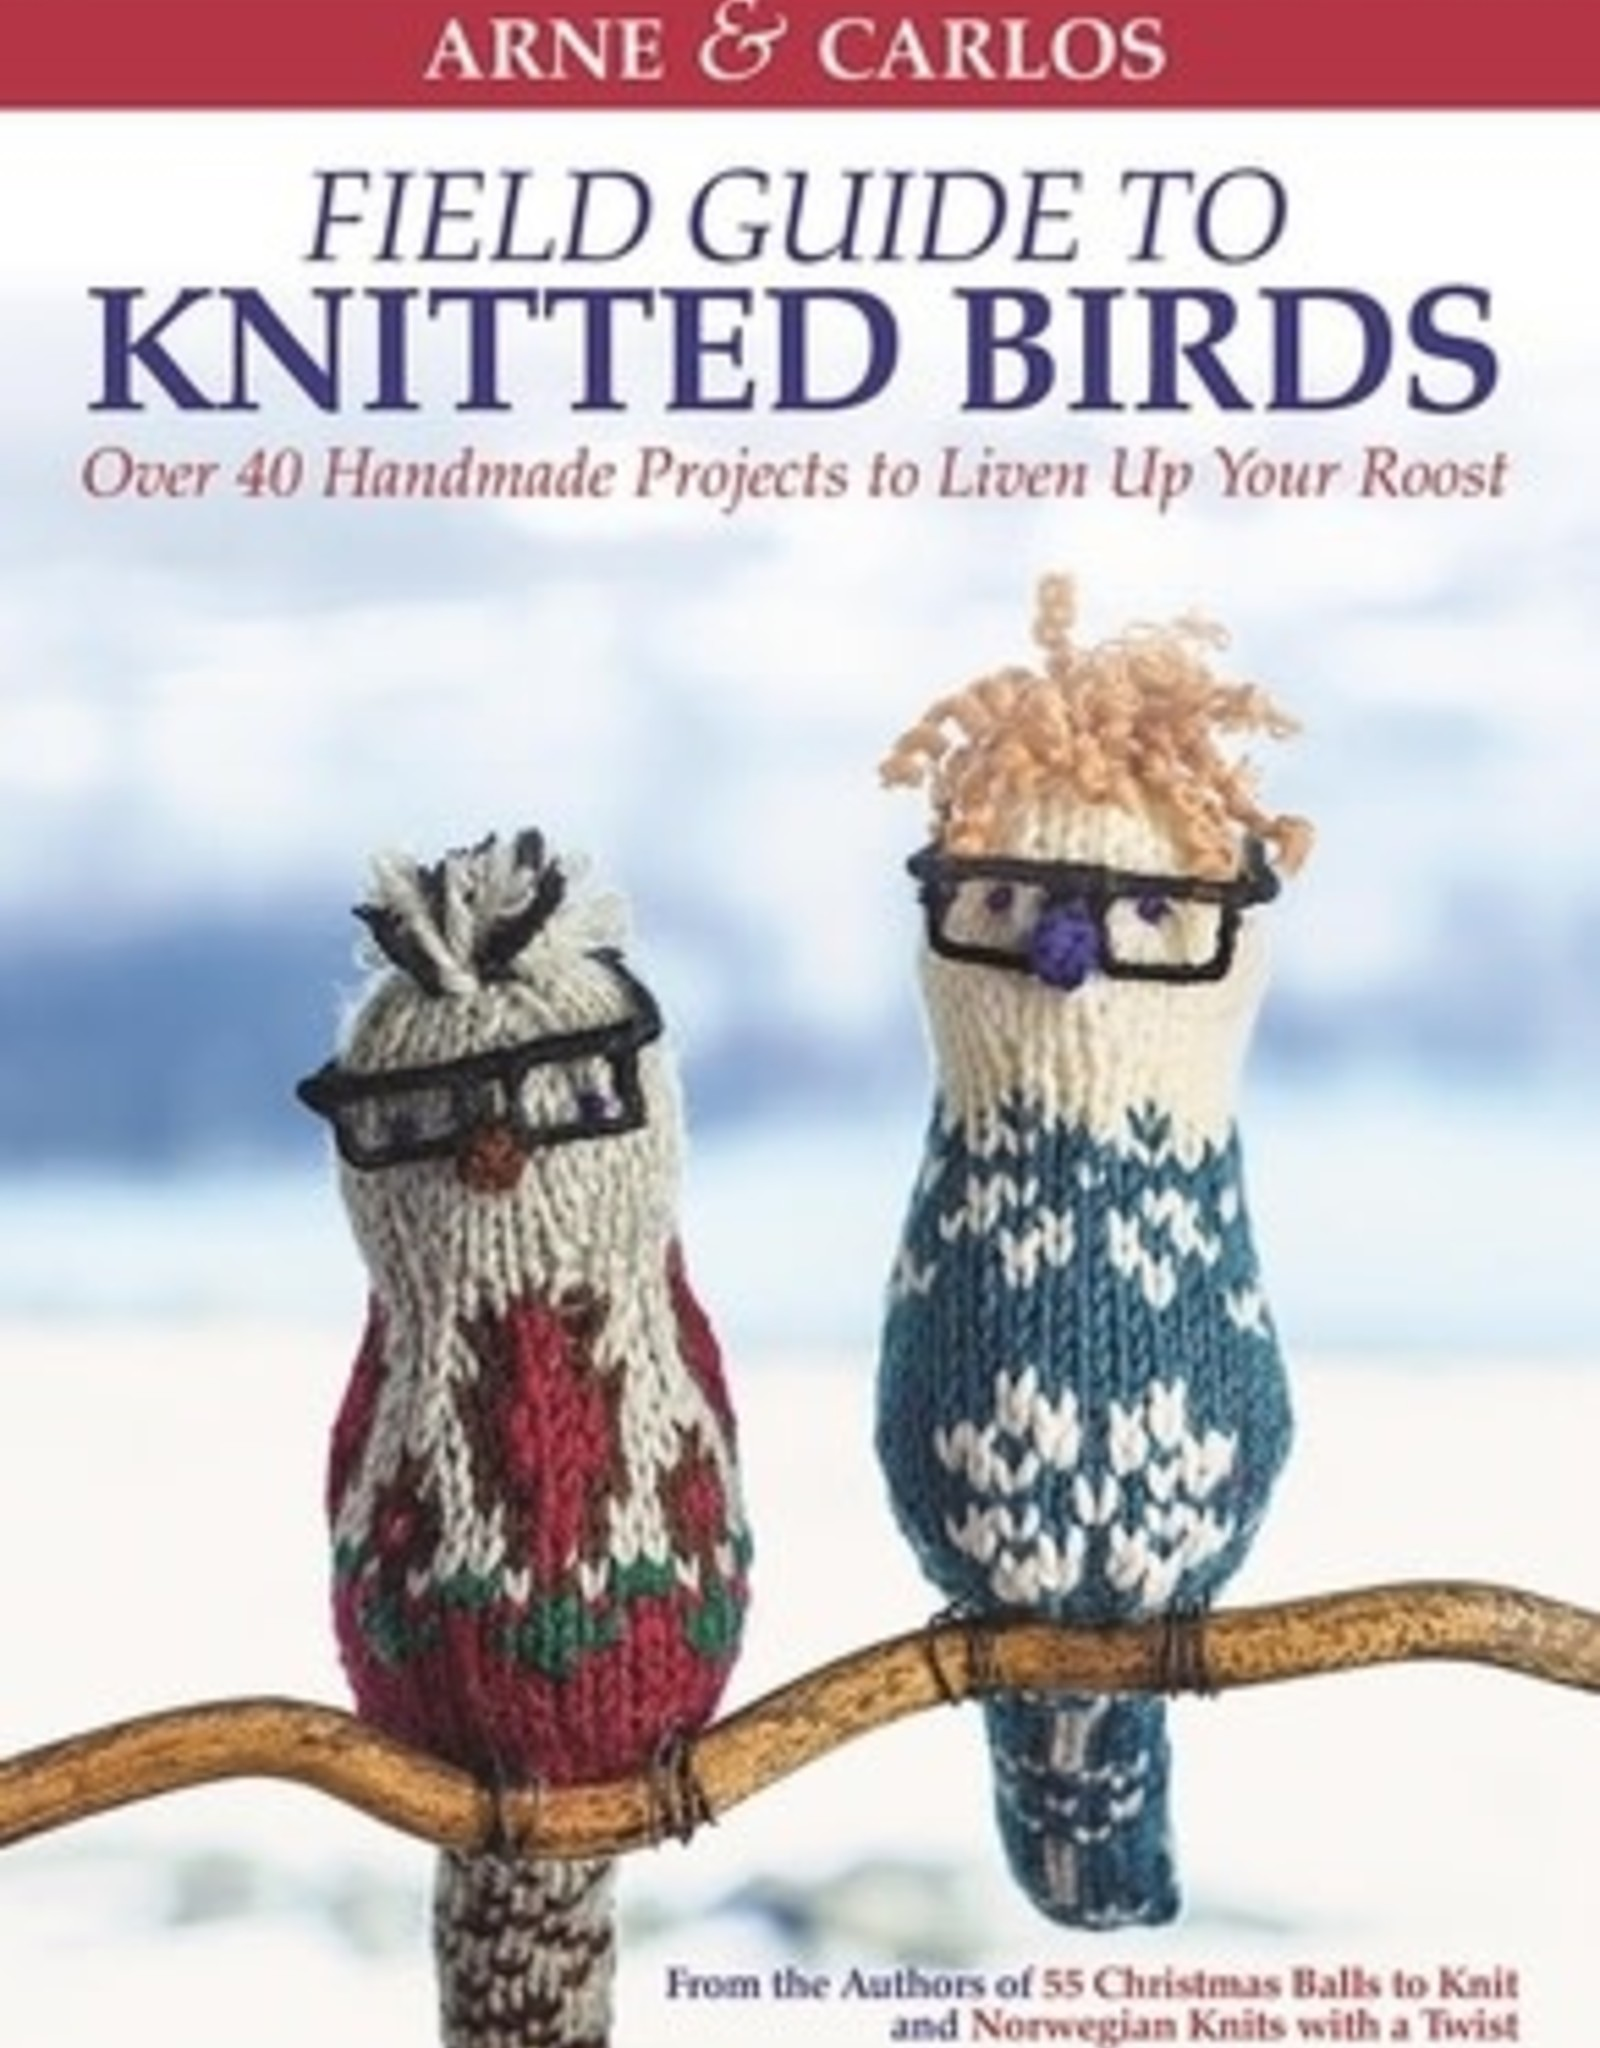 Raincoast Books Raincoast Books Field Guide to Knitted Birds